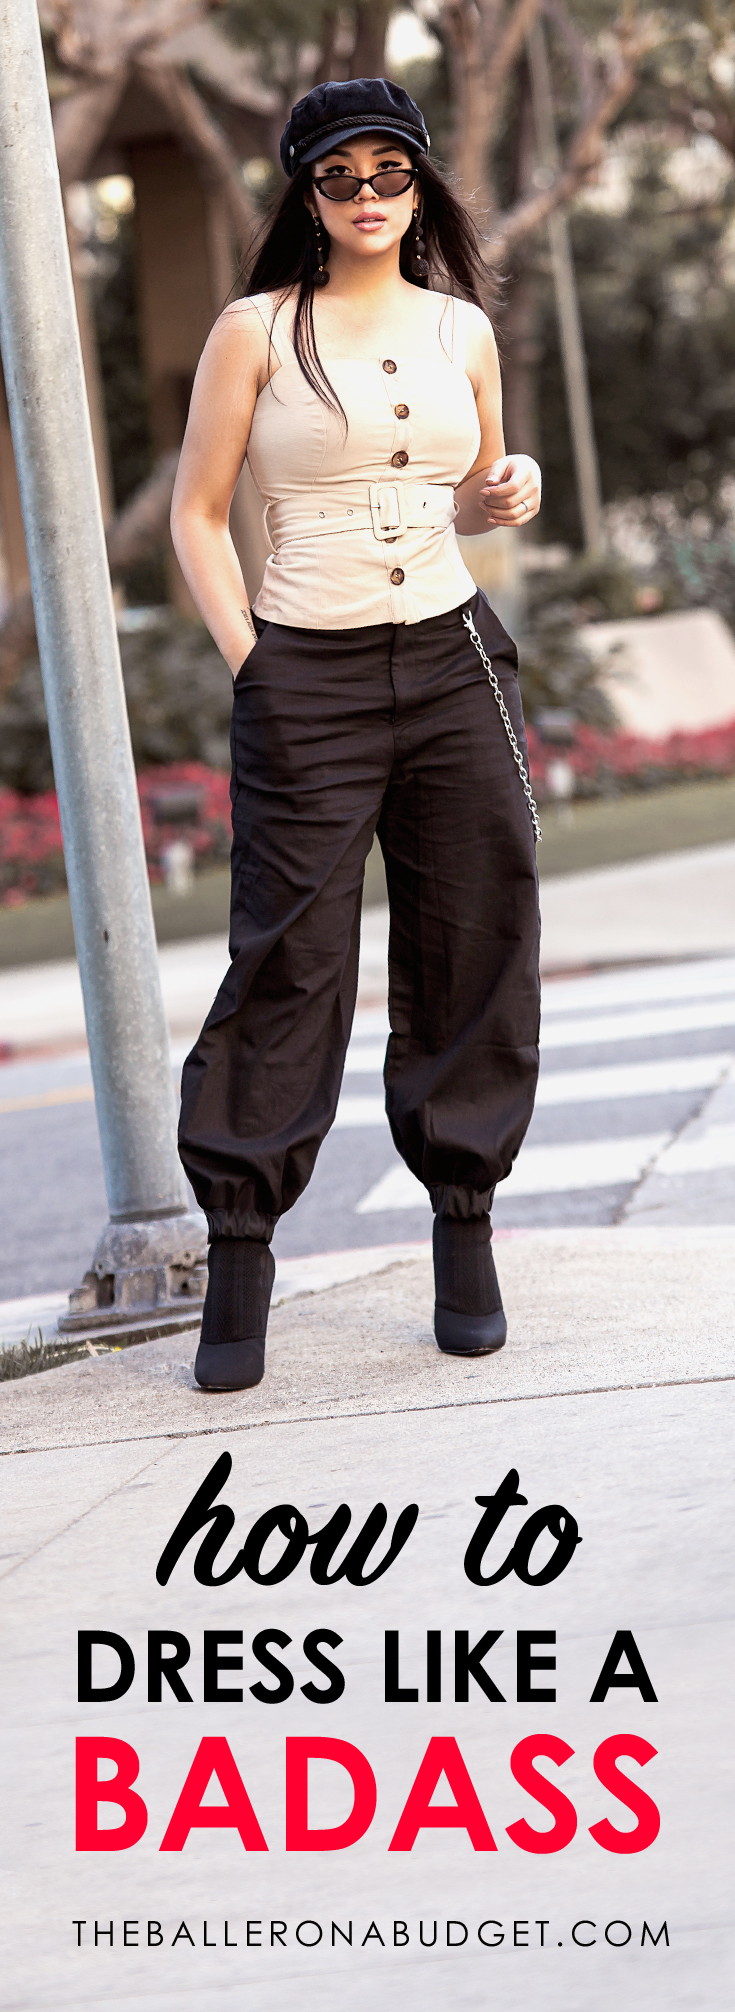 """Tired of dressing sexy or girly? Go against the grain and integrate a tomboy feel for an edgier, """"don't-mess-with-me"""" look. Here are my 7 tips on dressing like a badass. - www.theballeronabudget.com"""